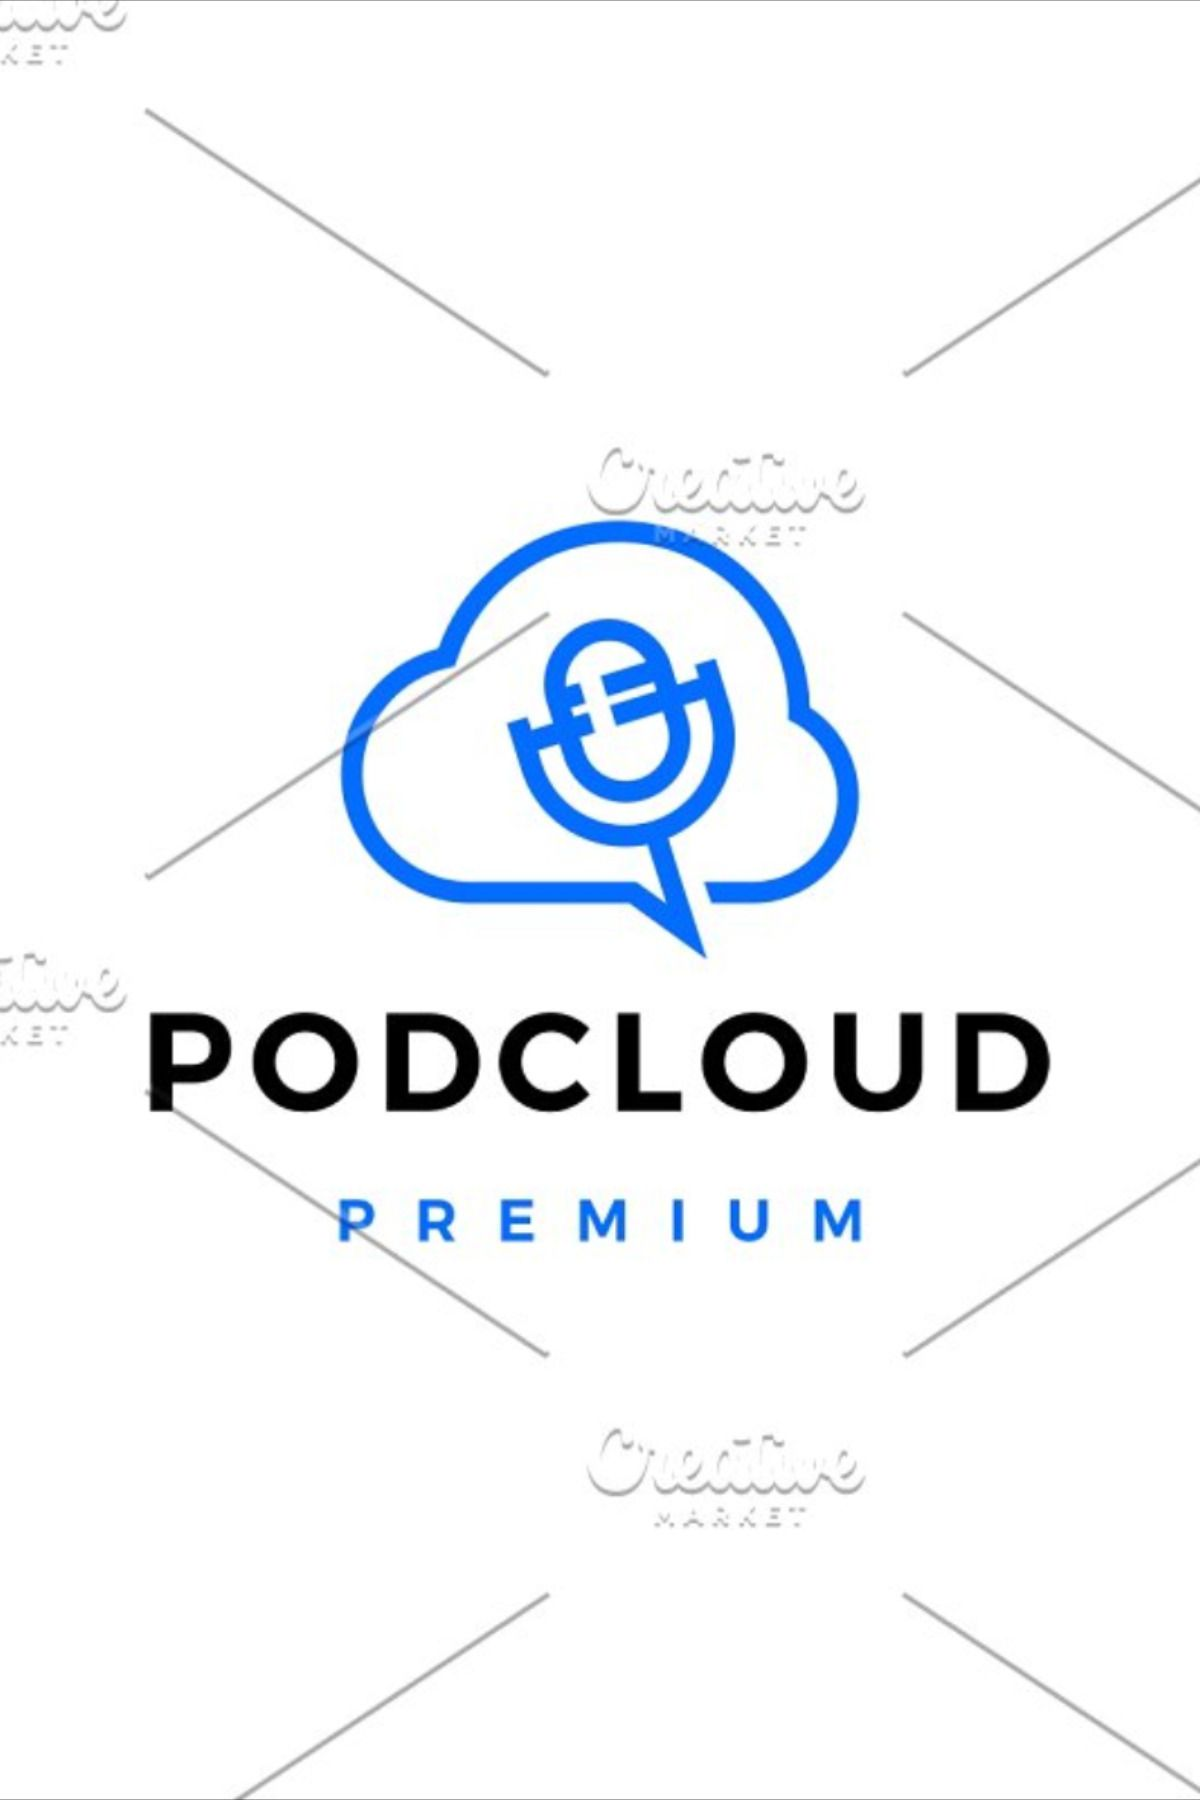 Server Cloud Podcast Logo Vector Vector Logo Logos Vector Icons Illustration